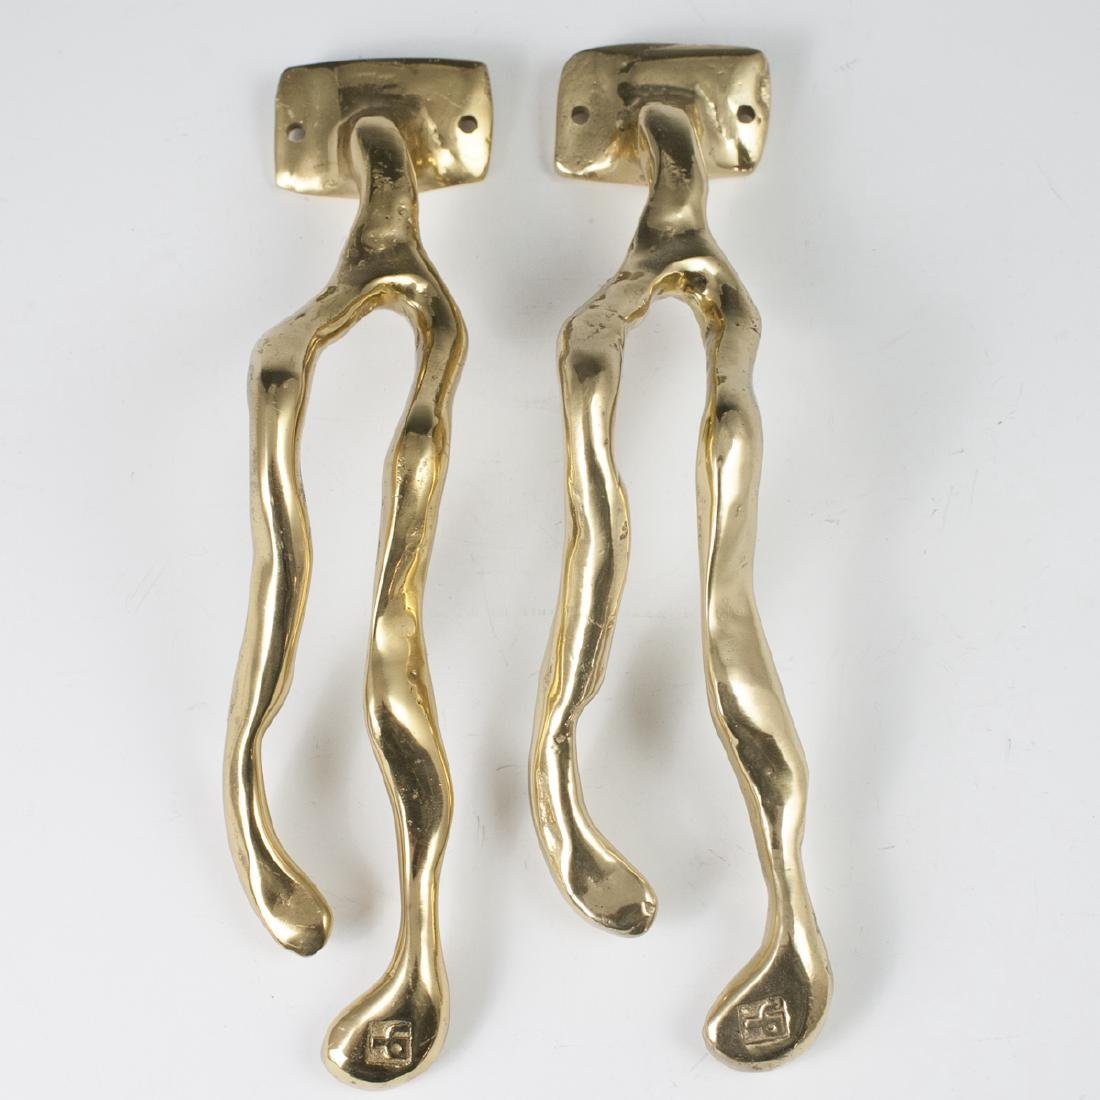 David Marshall Brass Towel Hangers